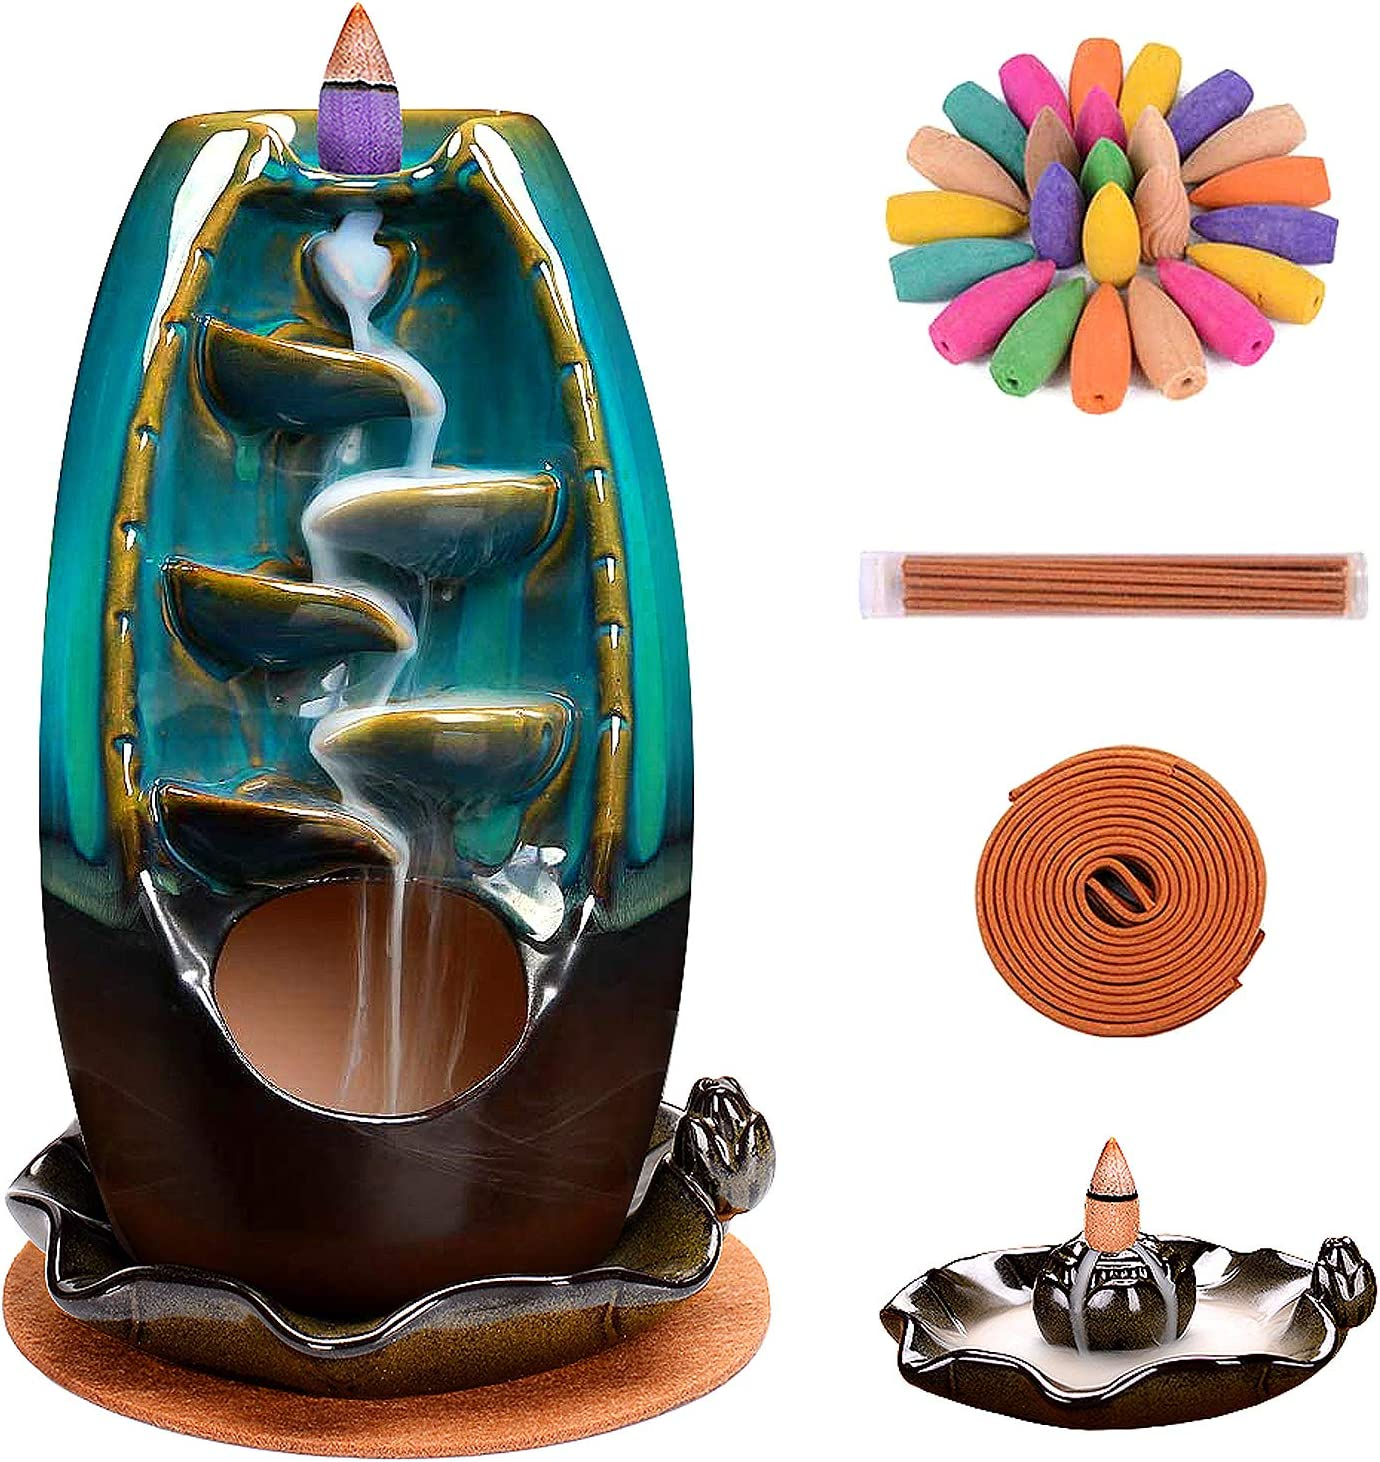 Incense Burner, Waterfall Incense Holder Ceramic Incense Burner Home Decor Aromatherapy Ornament with 120 Pcs Backflow Incense Cones, 30 Incense Stick, 20 Coil Incense, Cushion, Artificial Lotus Leaf